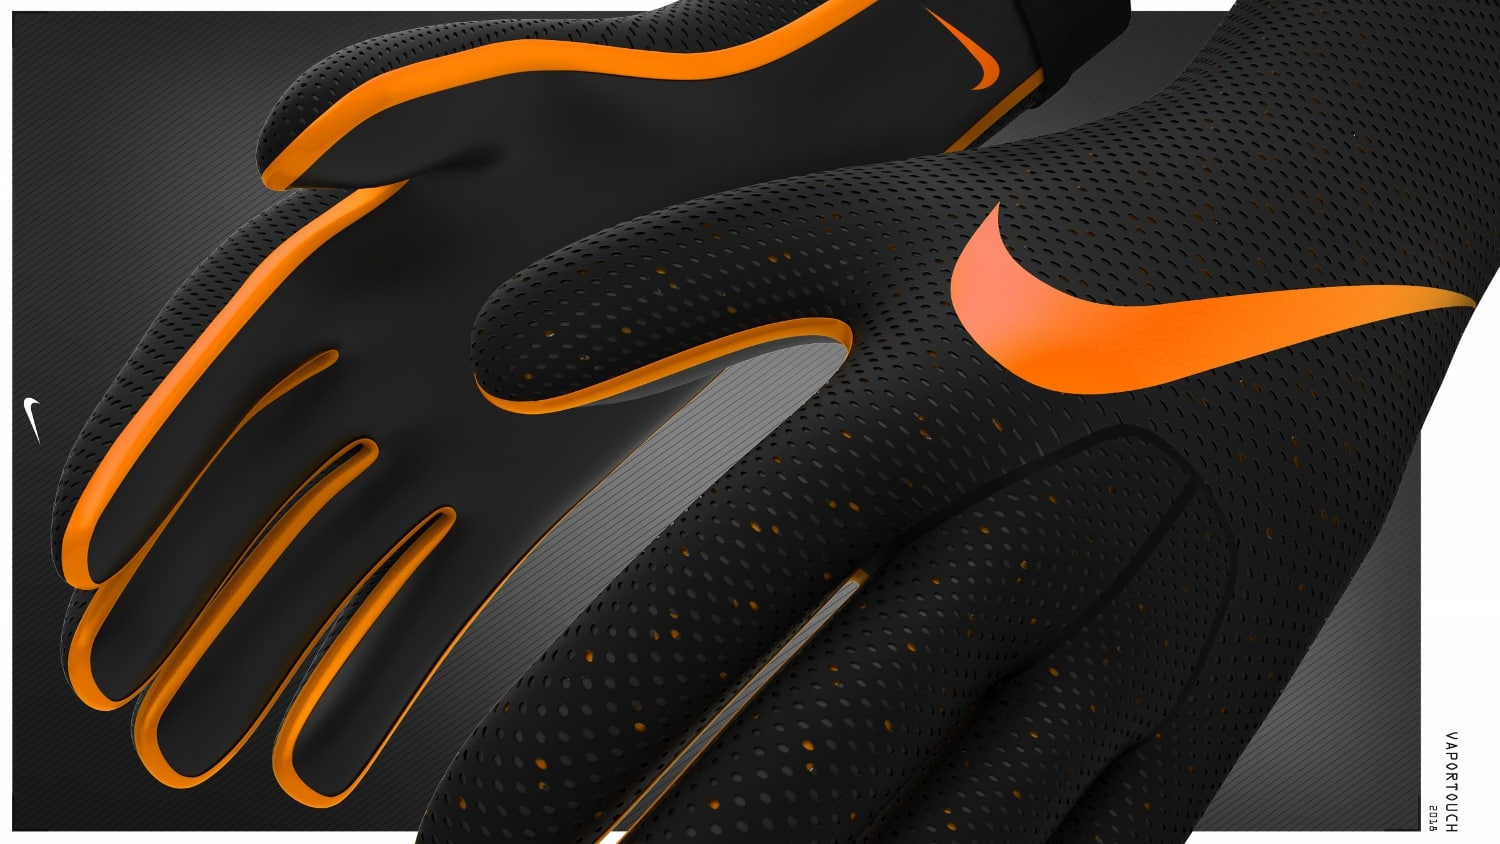 gants-gardien-football-Nike-Mercurial-Touch-Elite-img4